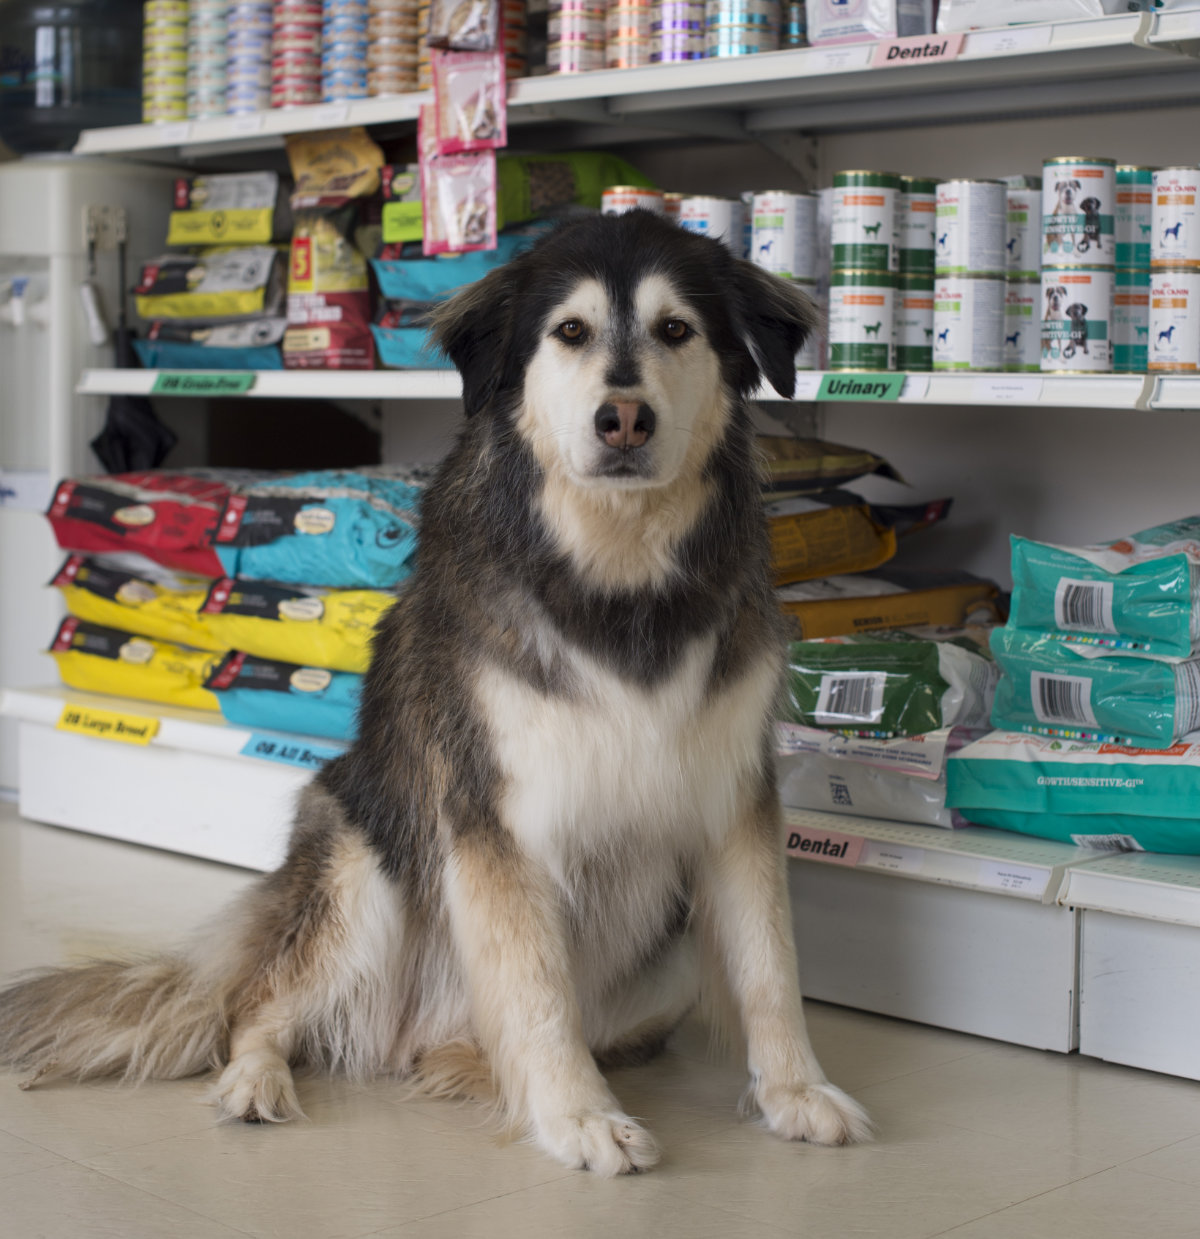 Dogs Home Near Rugeley: · Park Avenue Veterinary Services